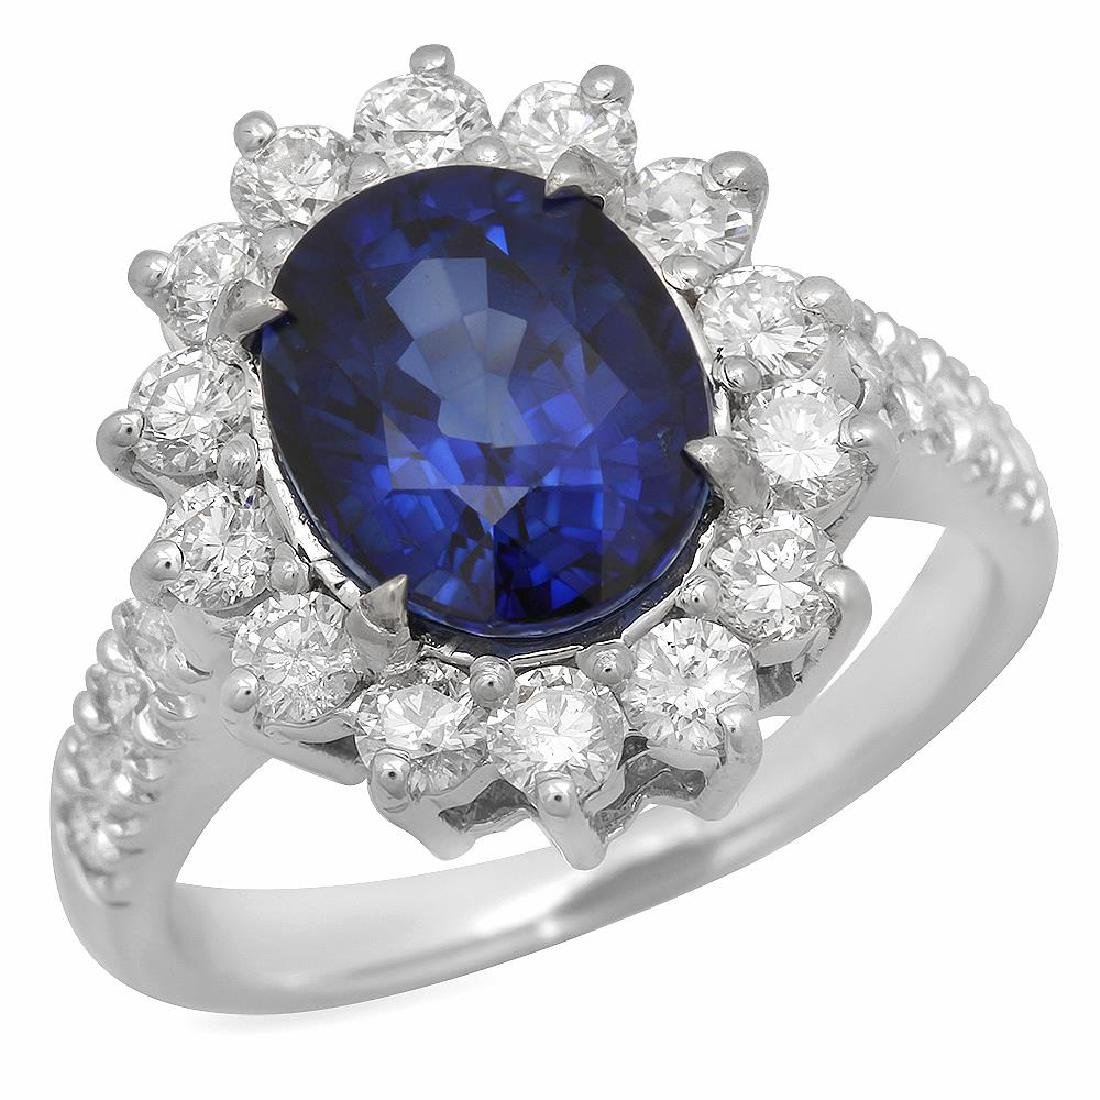 14K Gold 2.51ct Sapphire 1.15ct Diamond Ring